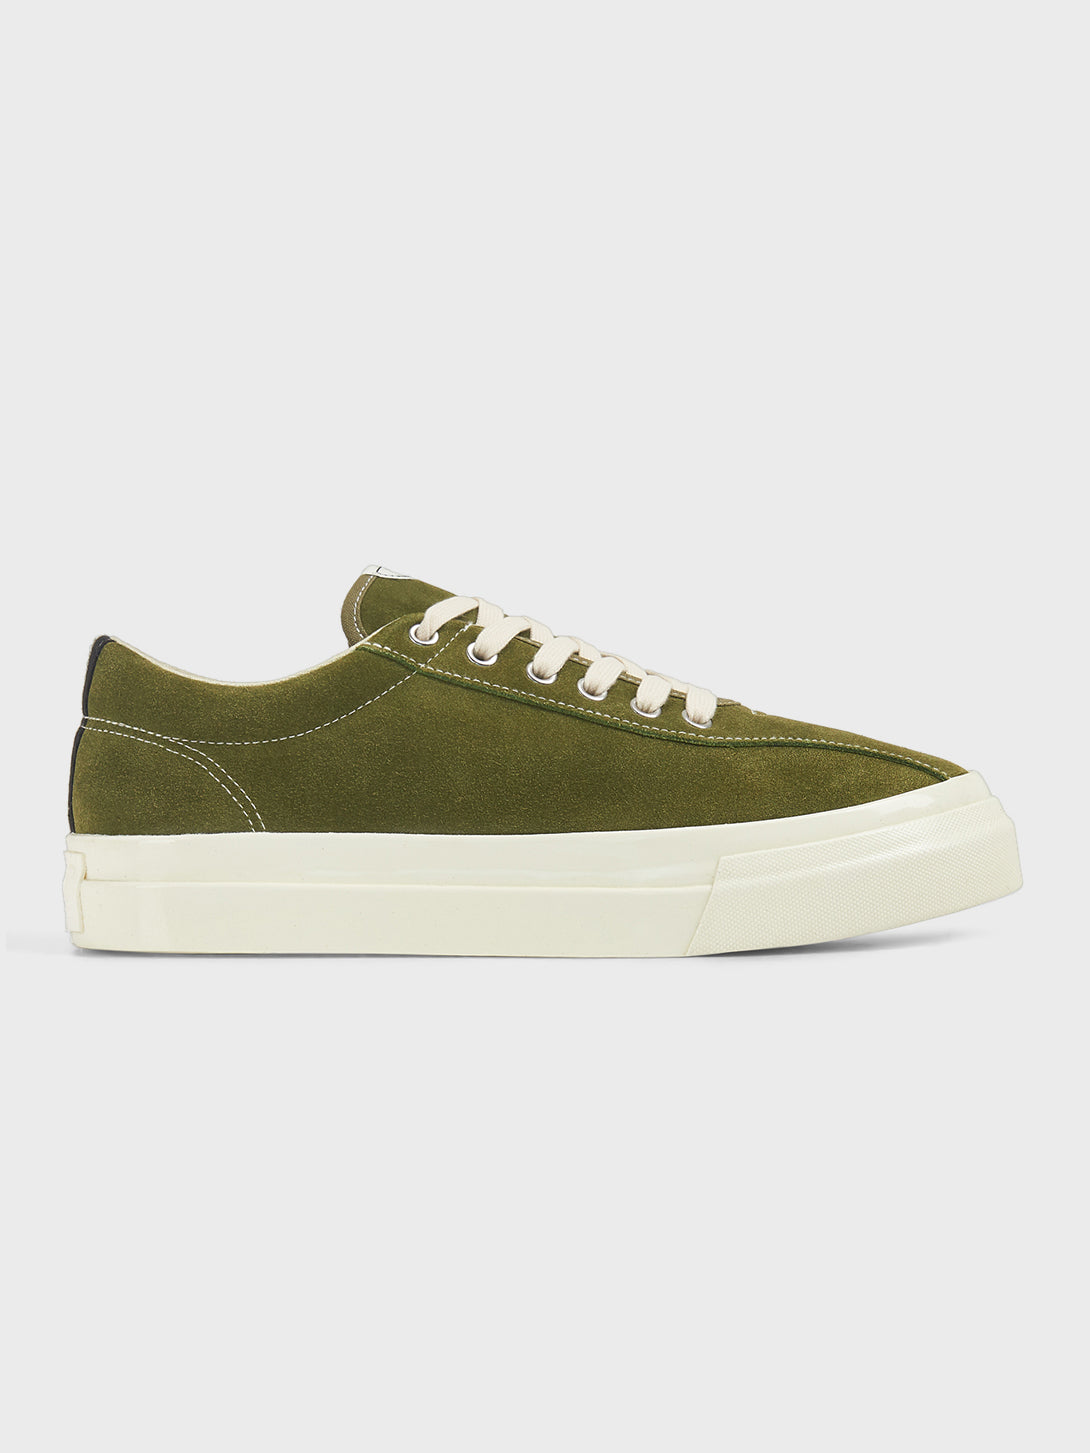 stepney workers club suede shoes sneakers MILITARY